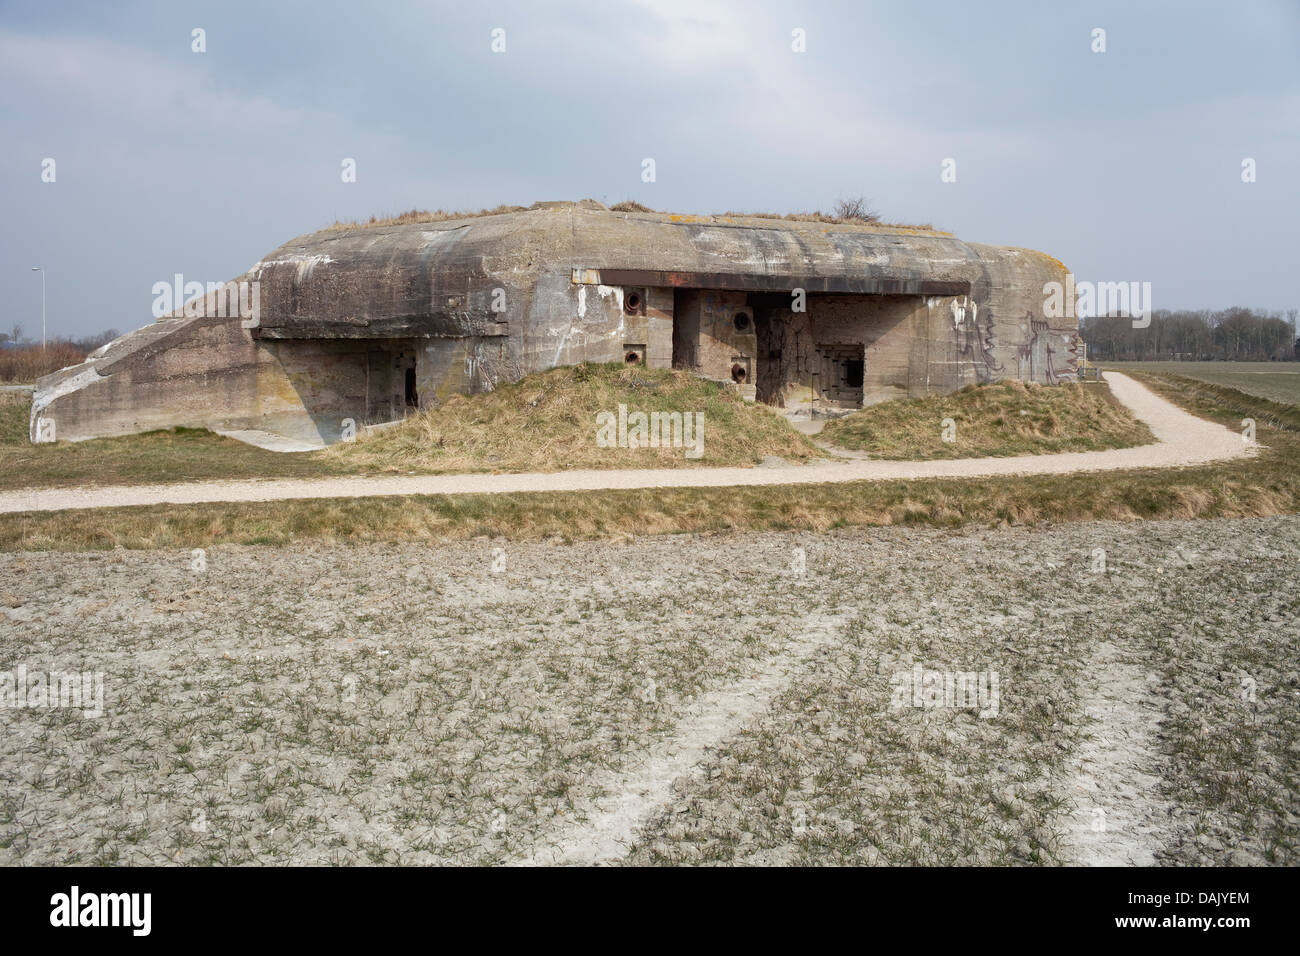 Normandy DDay German bunkers in Normandy France